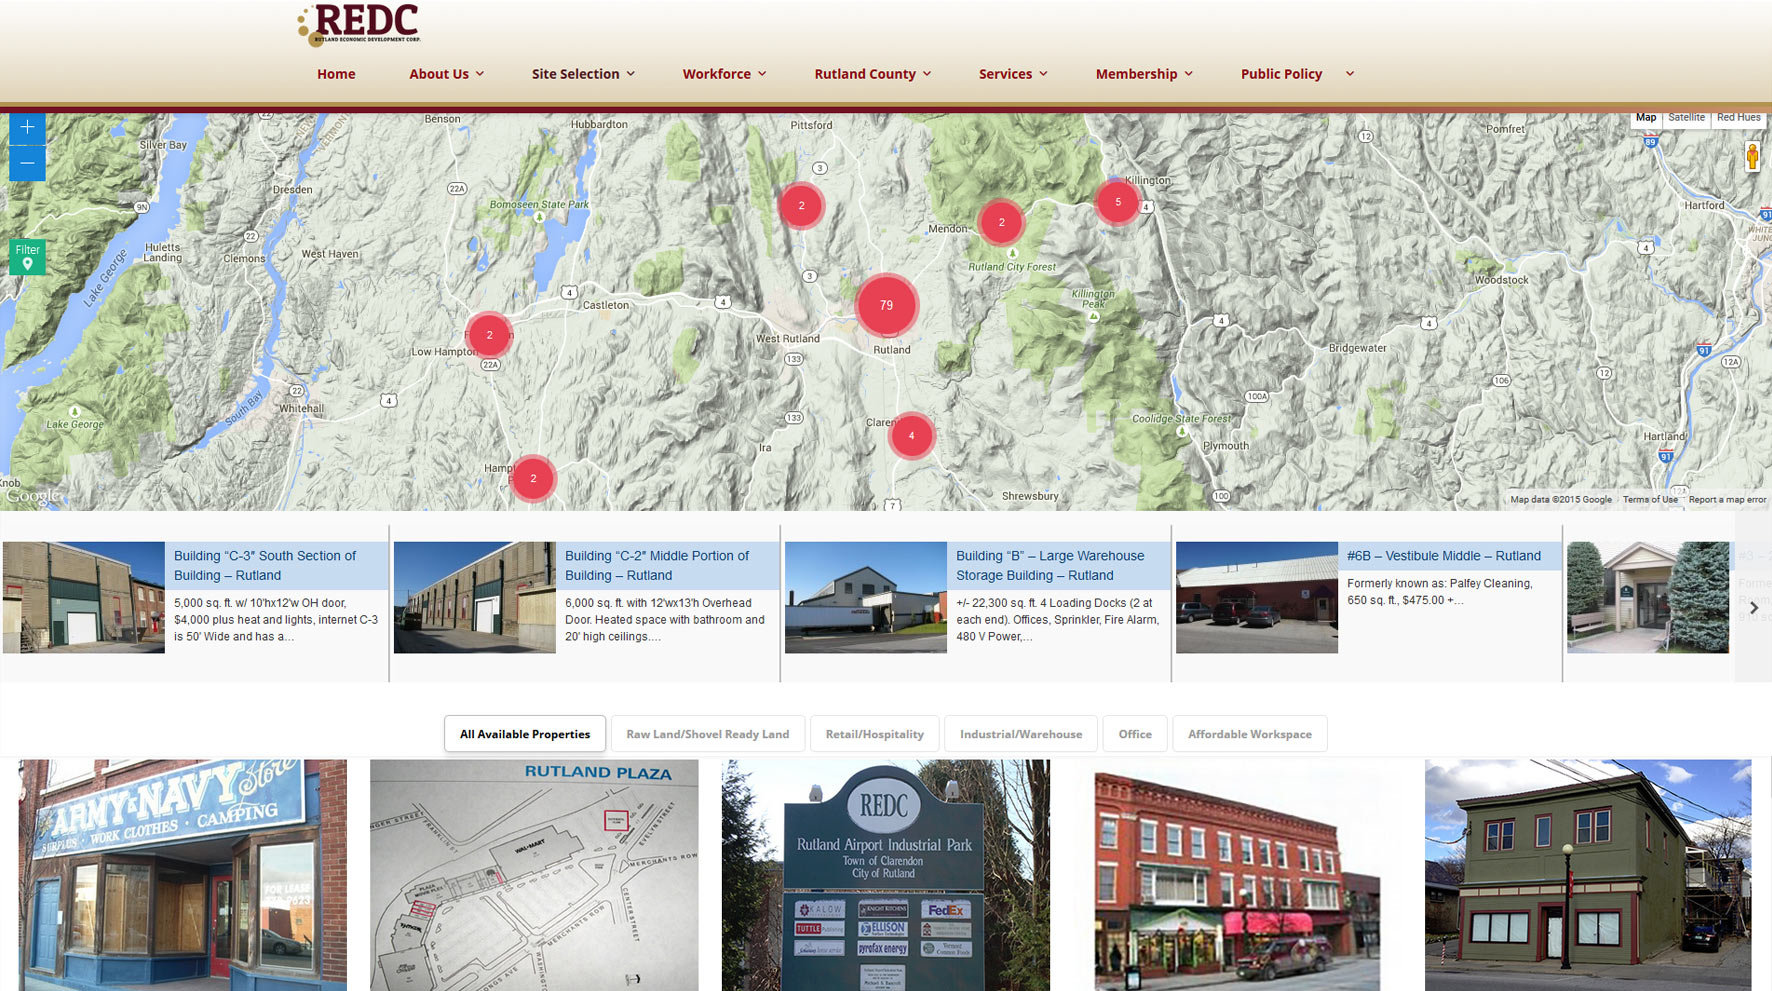 REDC-website-design-interactive-map